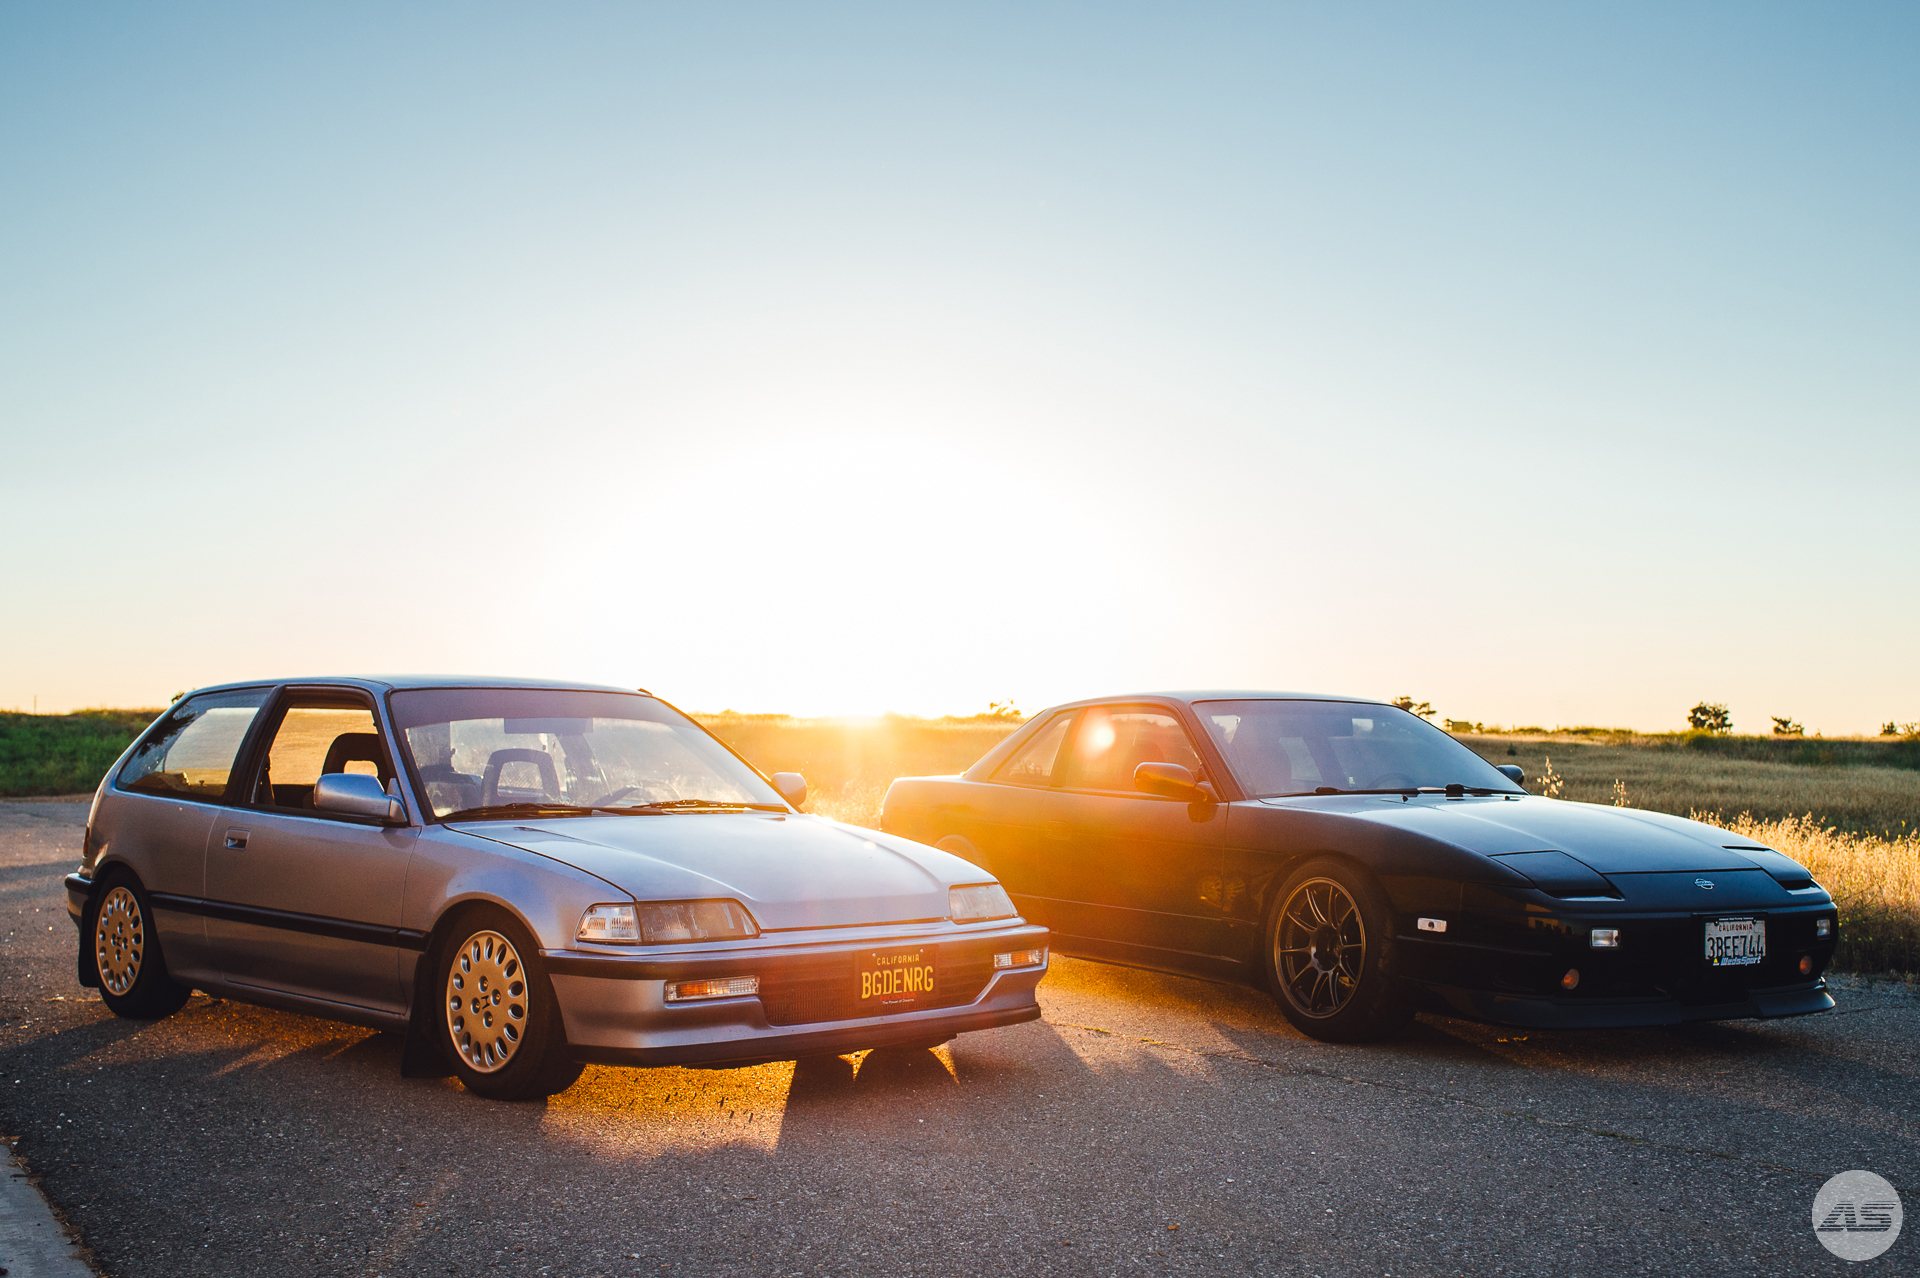 The JDM Duo - James's '88 Civic and '92 240SXHemet, CA | July 2019